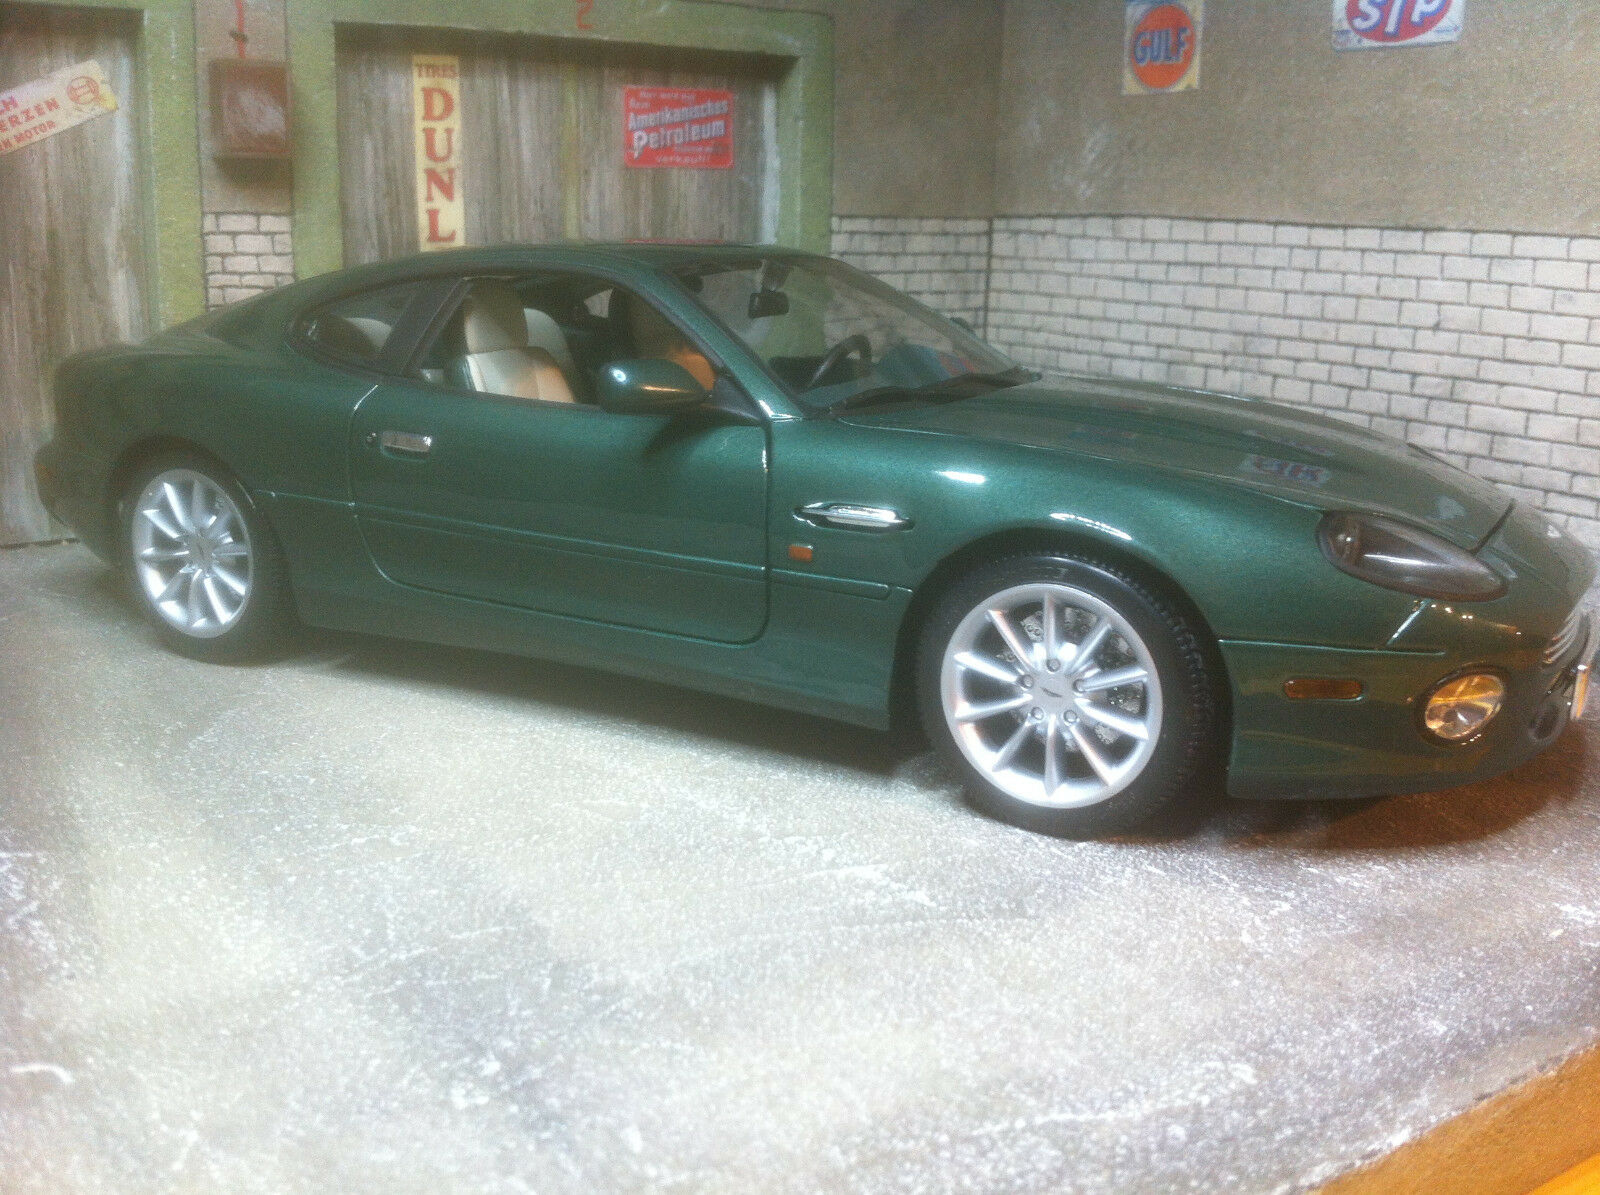 Aston Martin db7 Vantage Modified 1 18 ORIGINALE IN SCATOLA ORIGINALE 18 2159fd